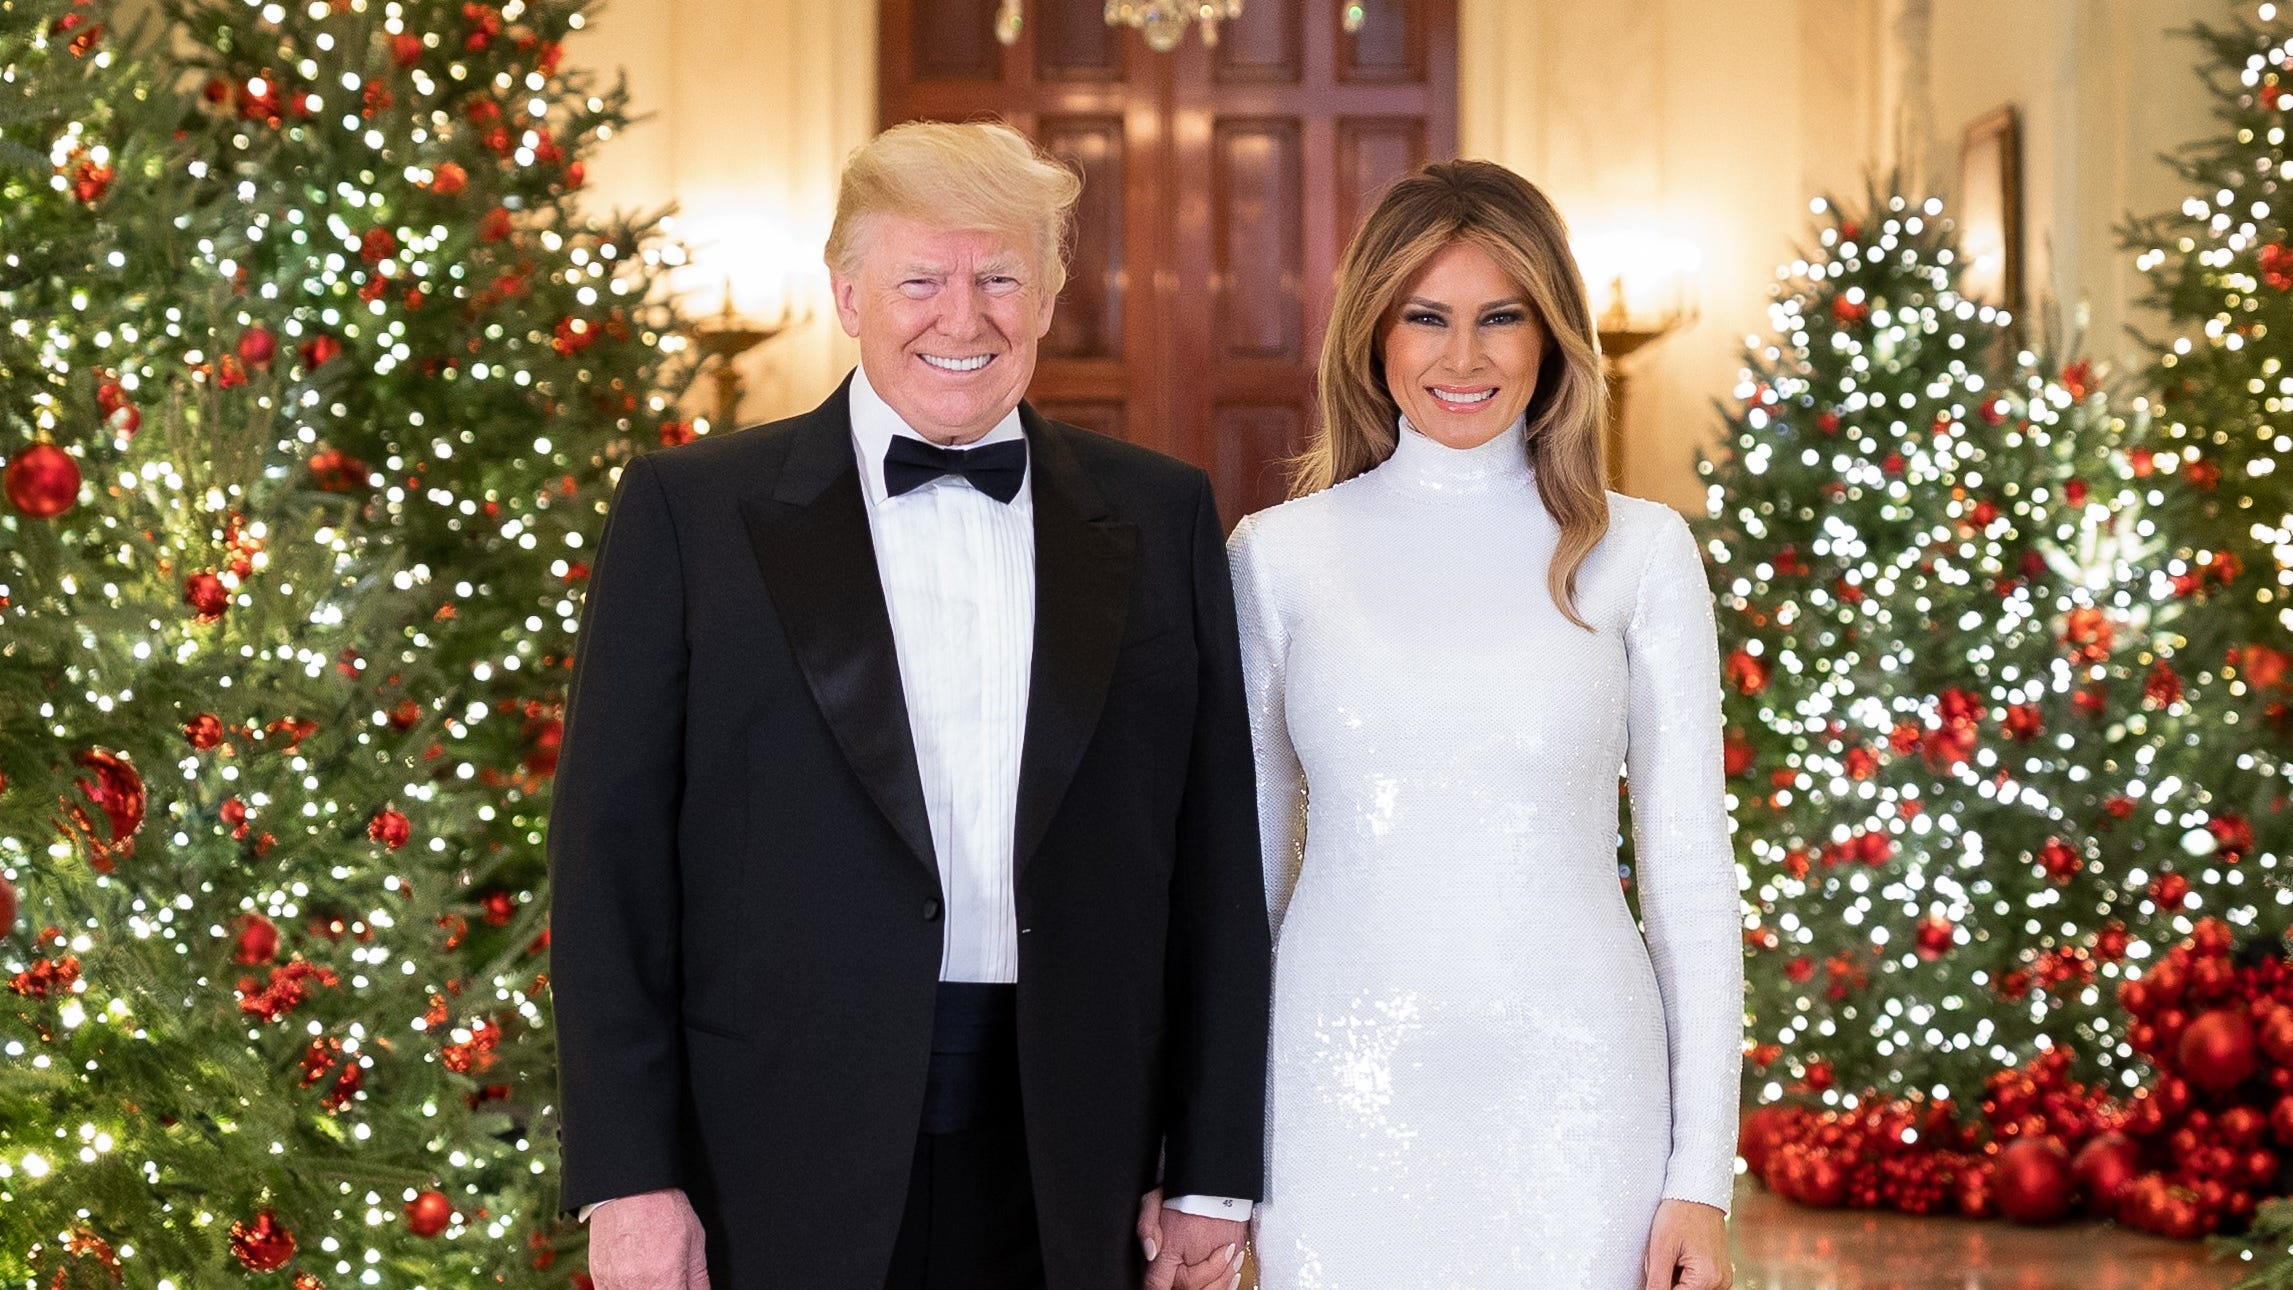 Donald Trump gives employees Christmas Eve off through executive order